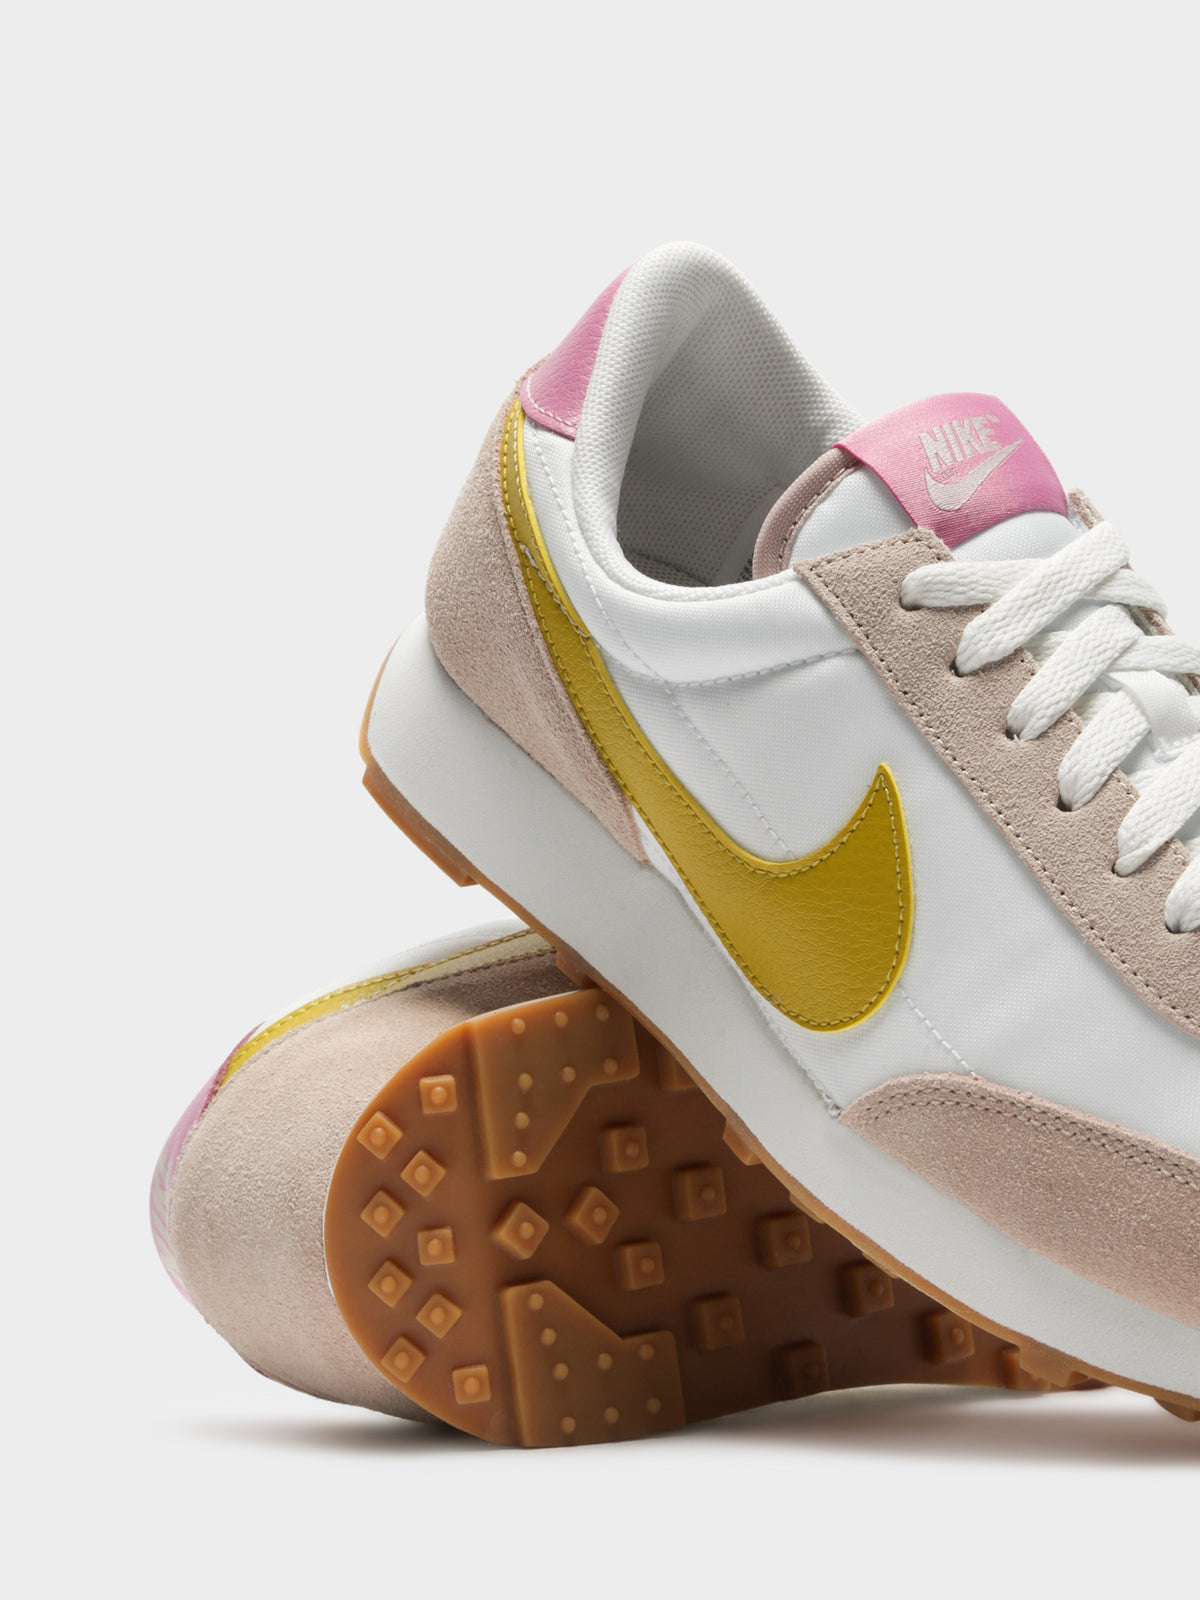 Womens Daybreak Sneakers in White & Yellow